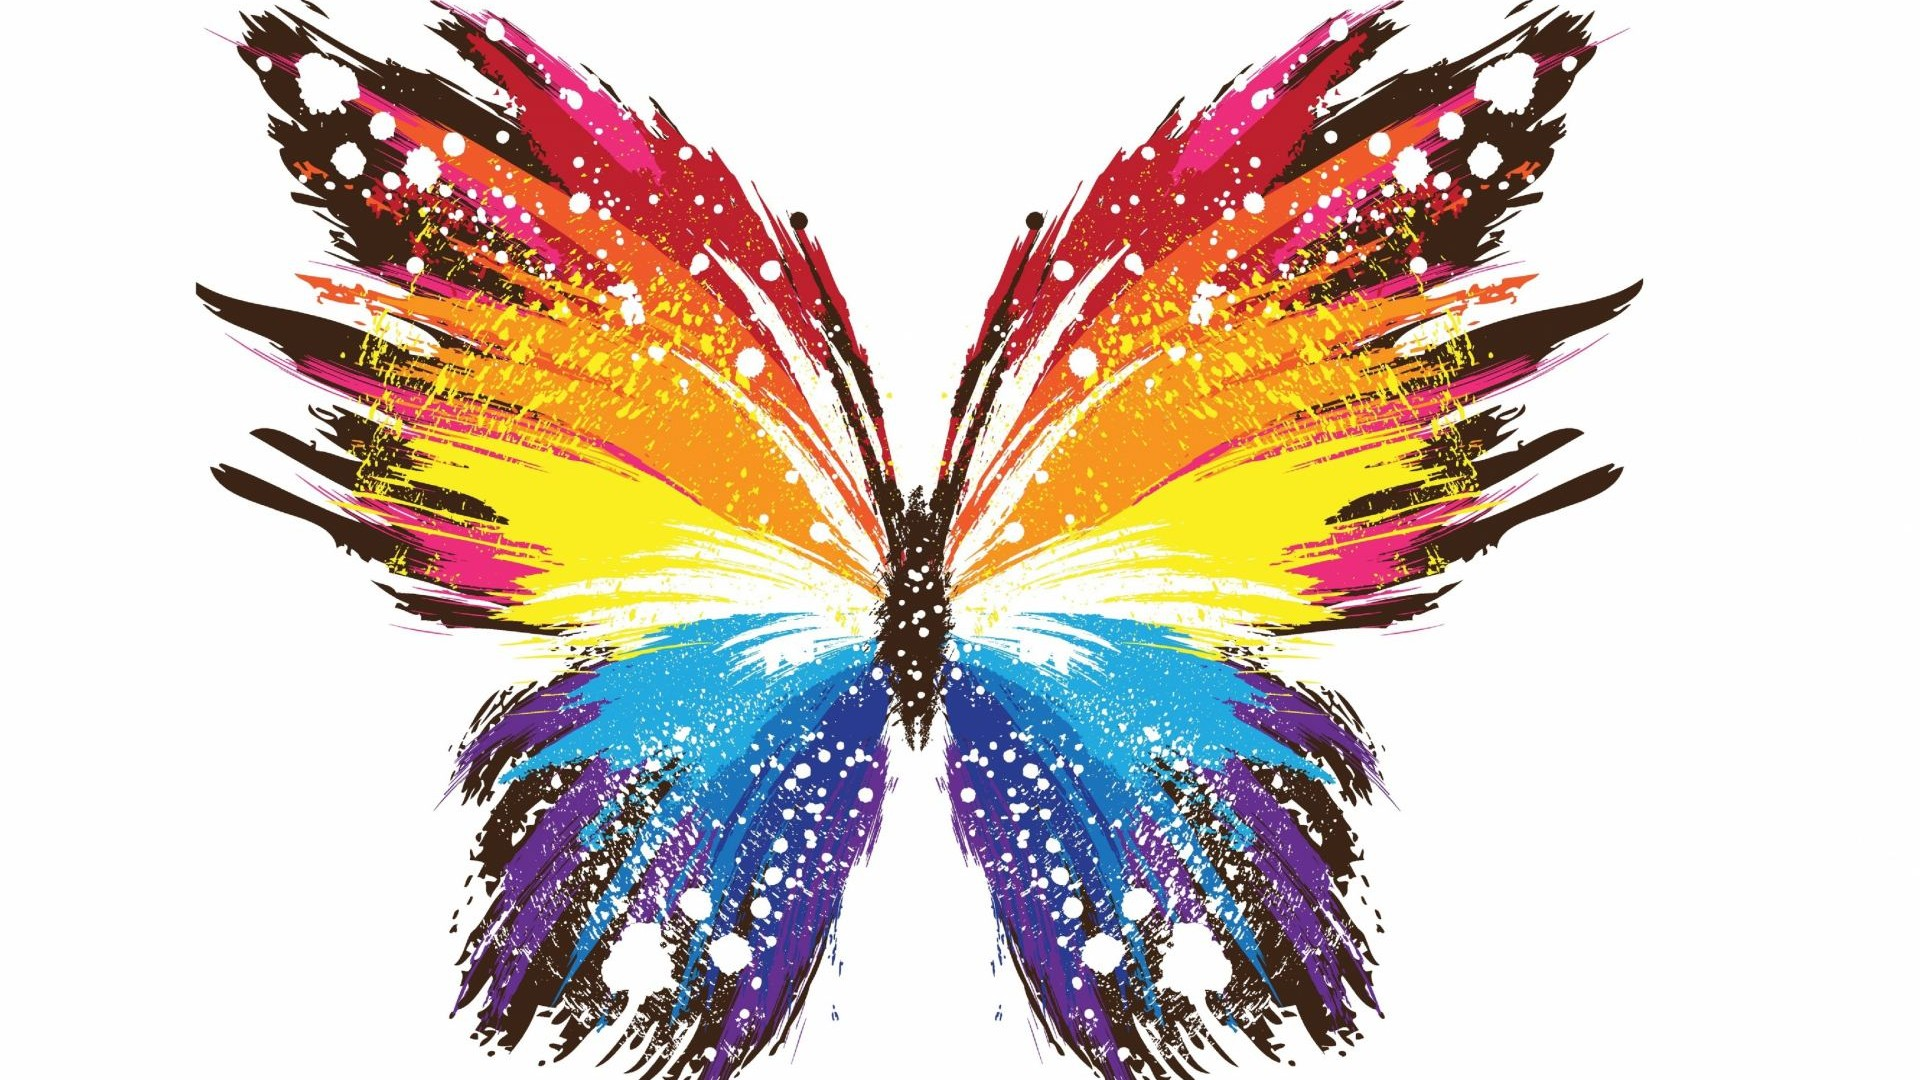 3d Abstract Free High Quality Colourful Butterfly Wallpaper